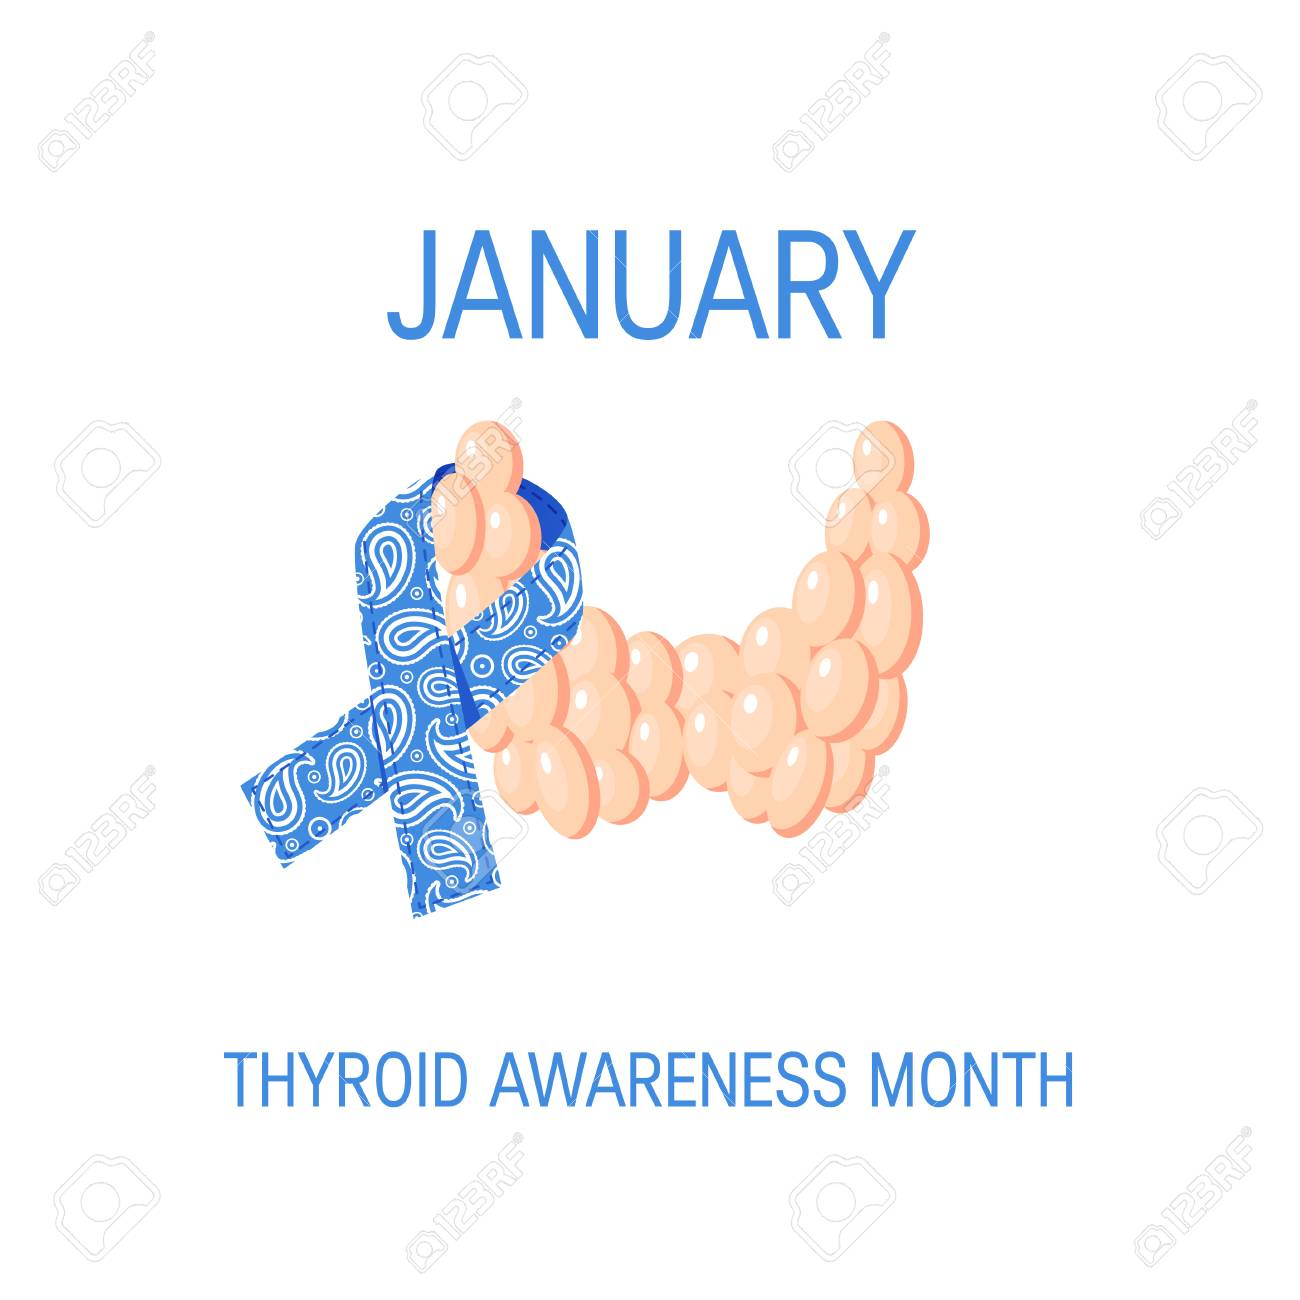 Thyroid Awareness Month Concept Square Design With Blue Paisley